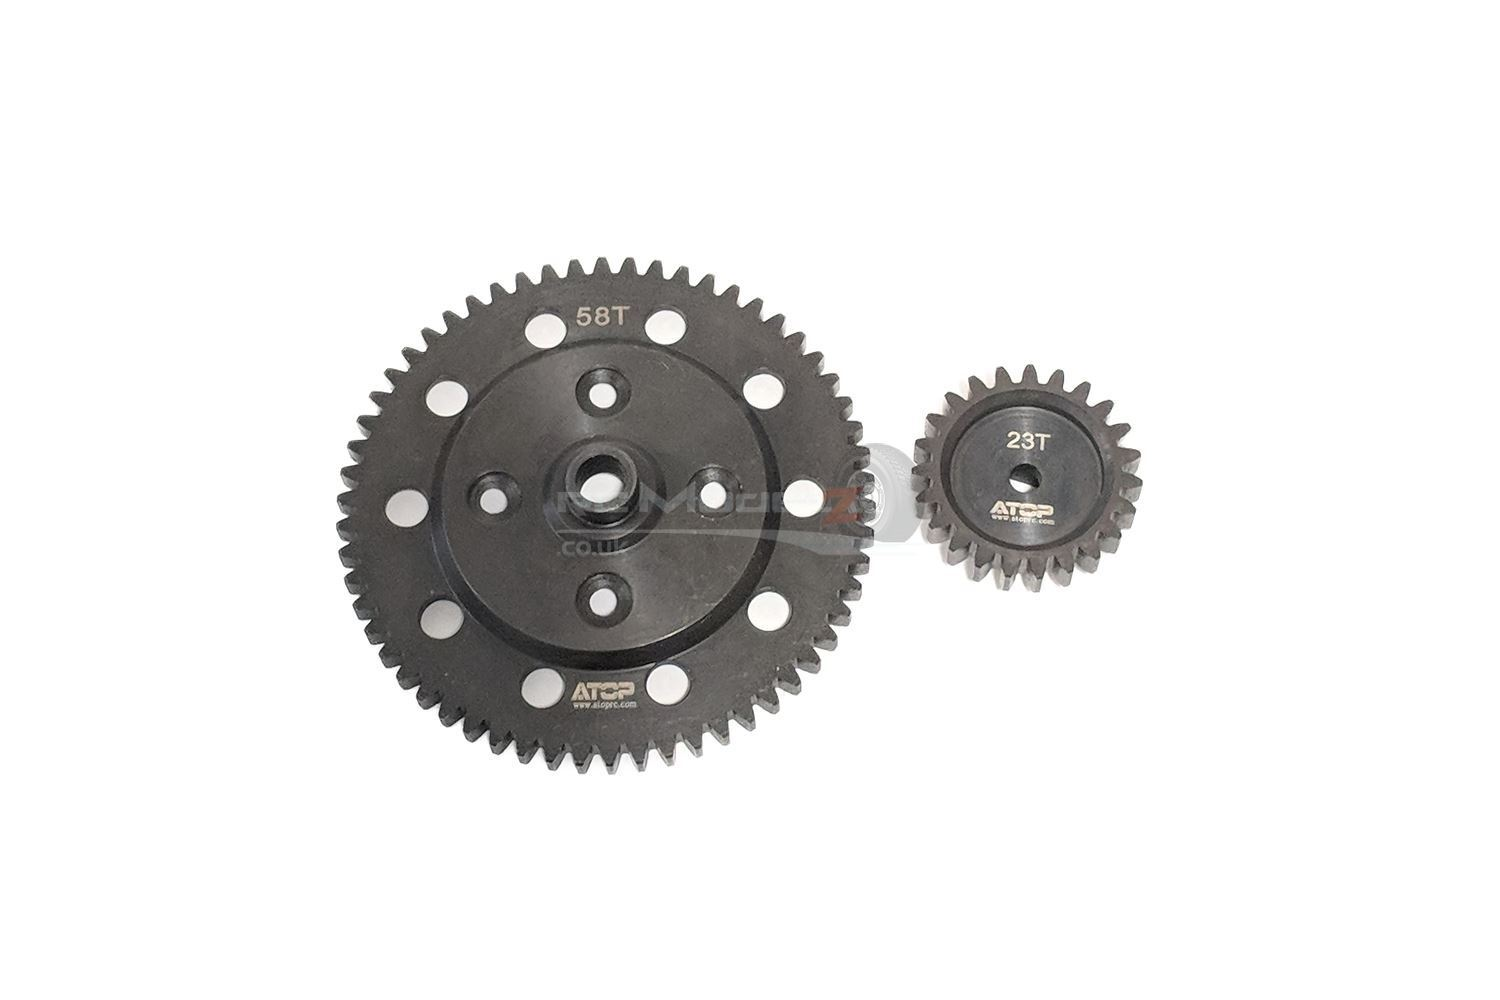 Atop RC  58 23th Spur Gear Set for Losi DBXL